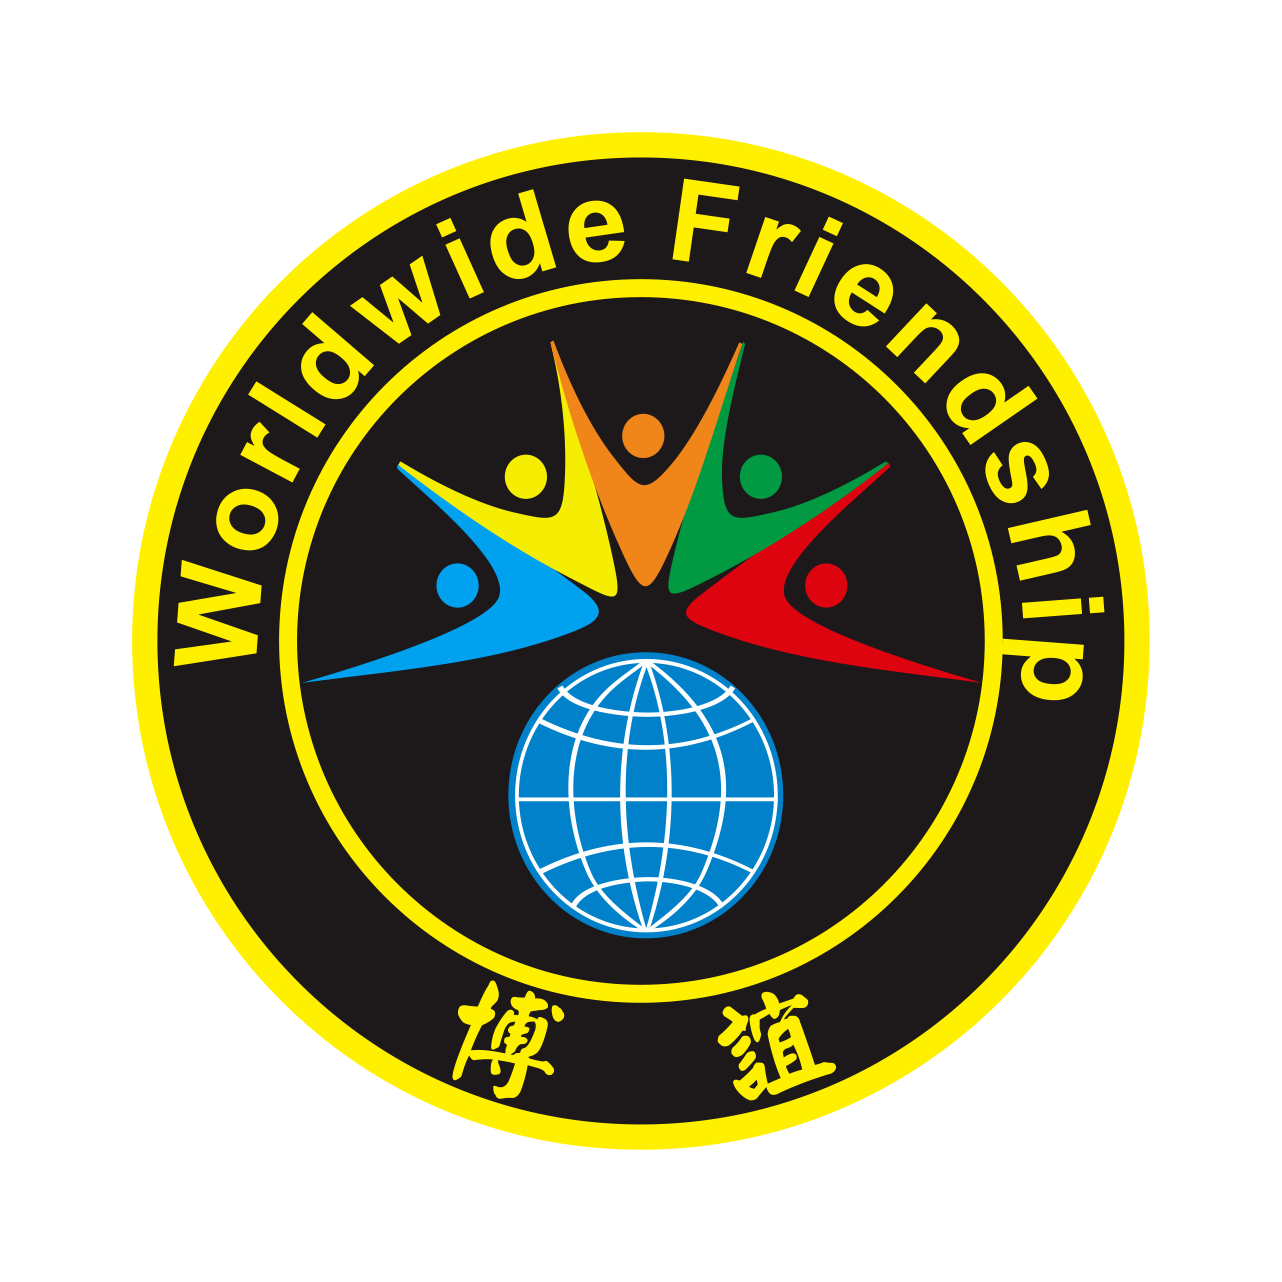 World Wide Friendship